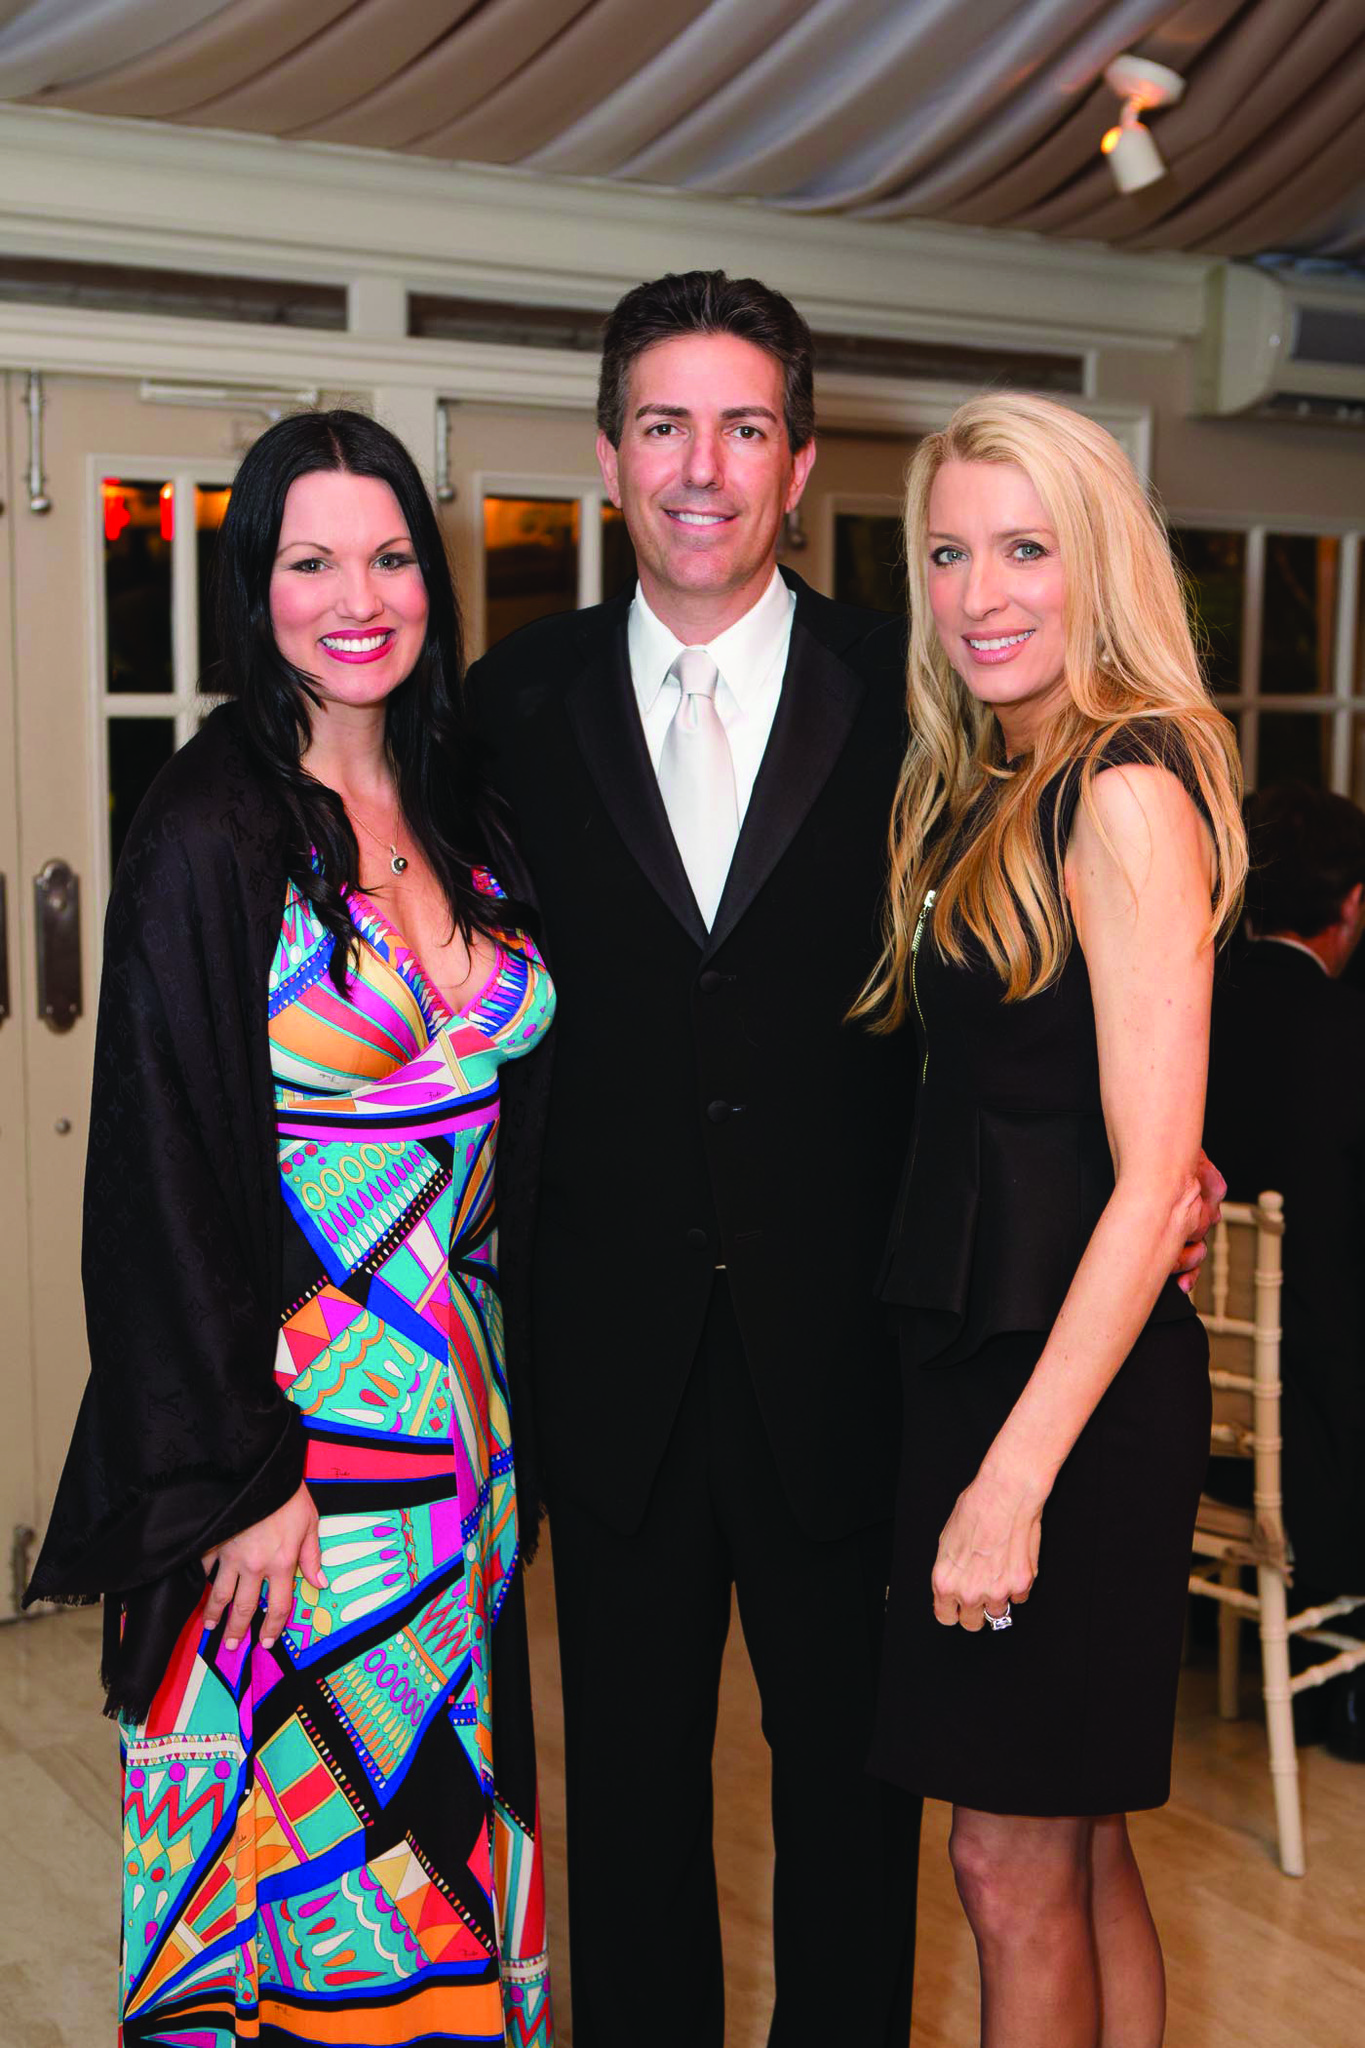 Society Scene photos - Angela Vecellio, left, Wayne Pacelle and Laura Maloney were among the more than 250 guests at The Humane Society of the United States